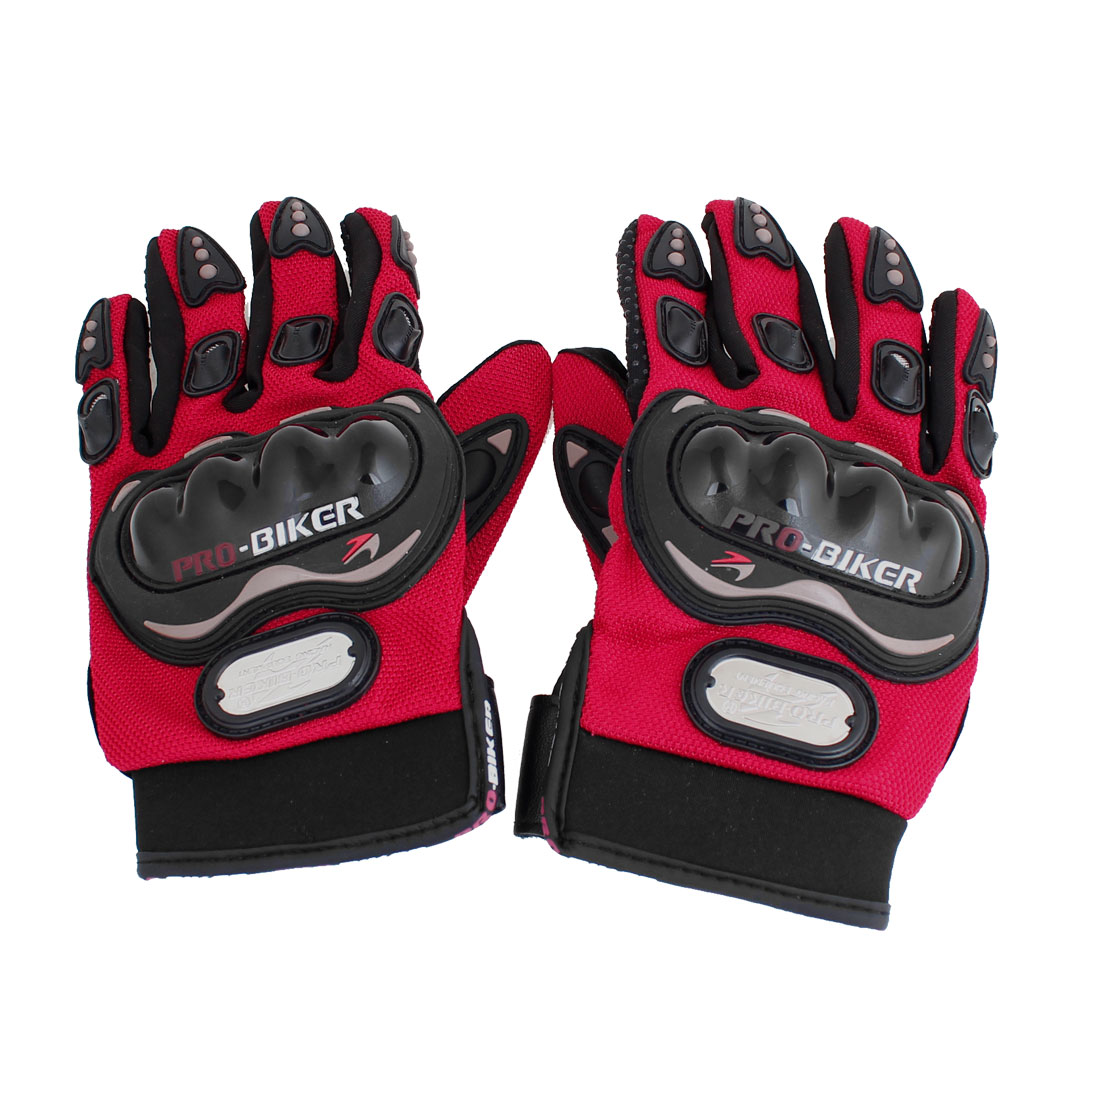 2 Pcs Nonslip Palm Hook Loop Driving Full Finger Sports Gloves Black Red Size XL for Man